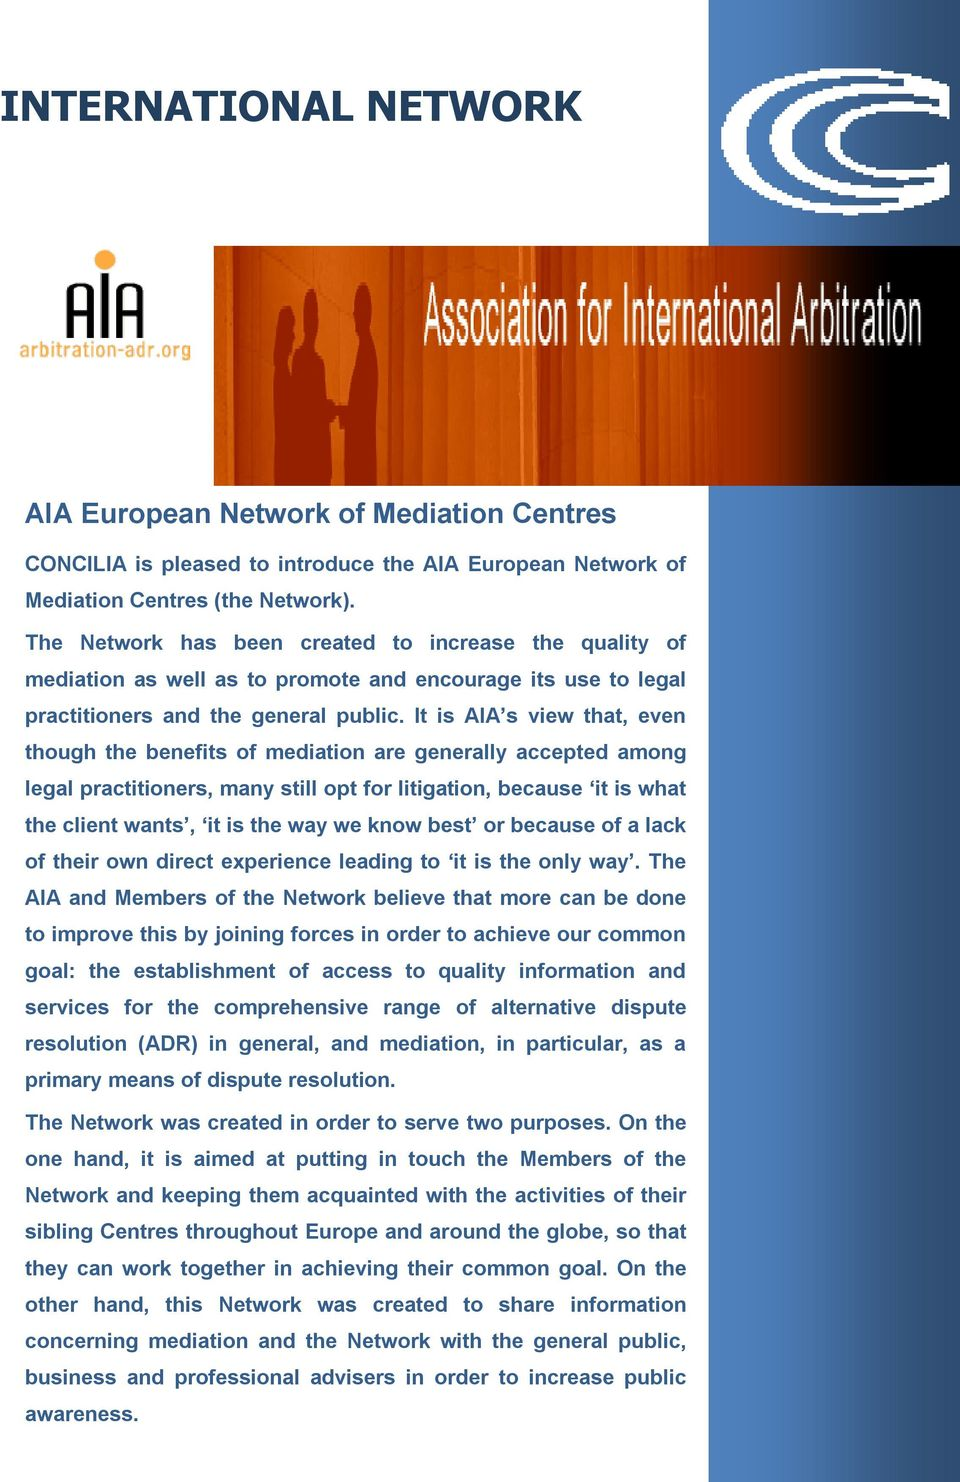 It is AIA s view that, even though the benefits of mediation are generally accepted among legal practitioners, many still opt for litigation, because it is what the client wants, it is the way we